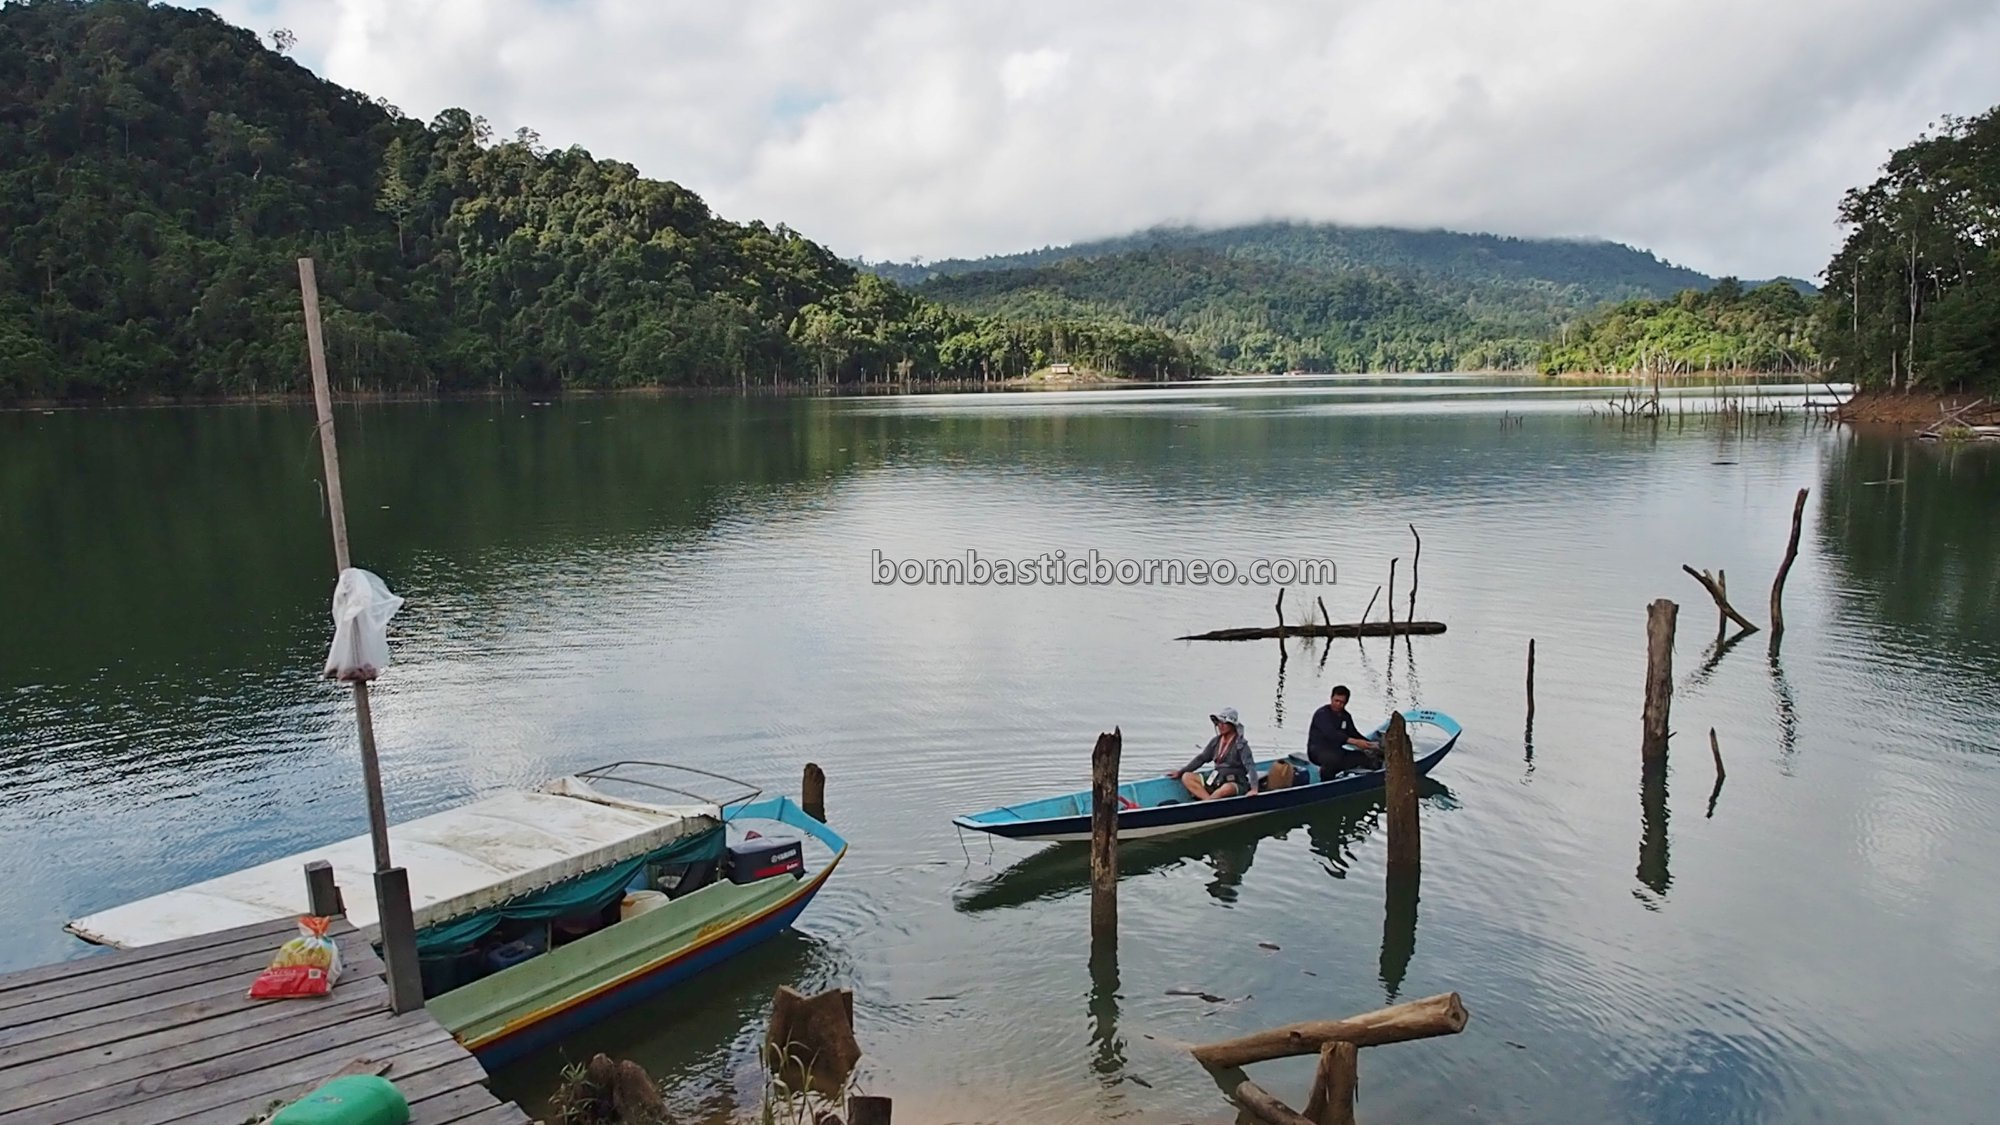 Bakun Embankment Dam, destination, Ikan semah, traditional, fishing trip, memancing, homestay, Belaga, Malaysia, Sarawak, tourist attraction, travel guide, Cross Border, Borneo, 巫拉甲加帛马来西亚,